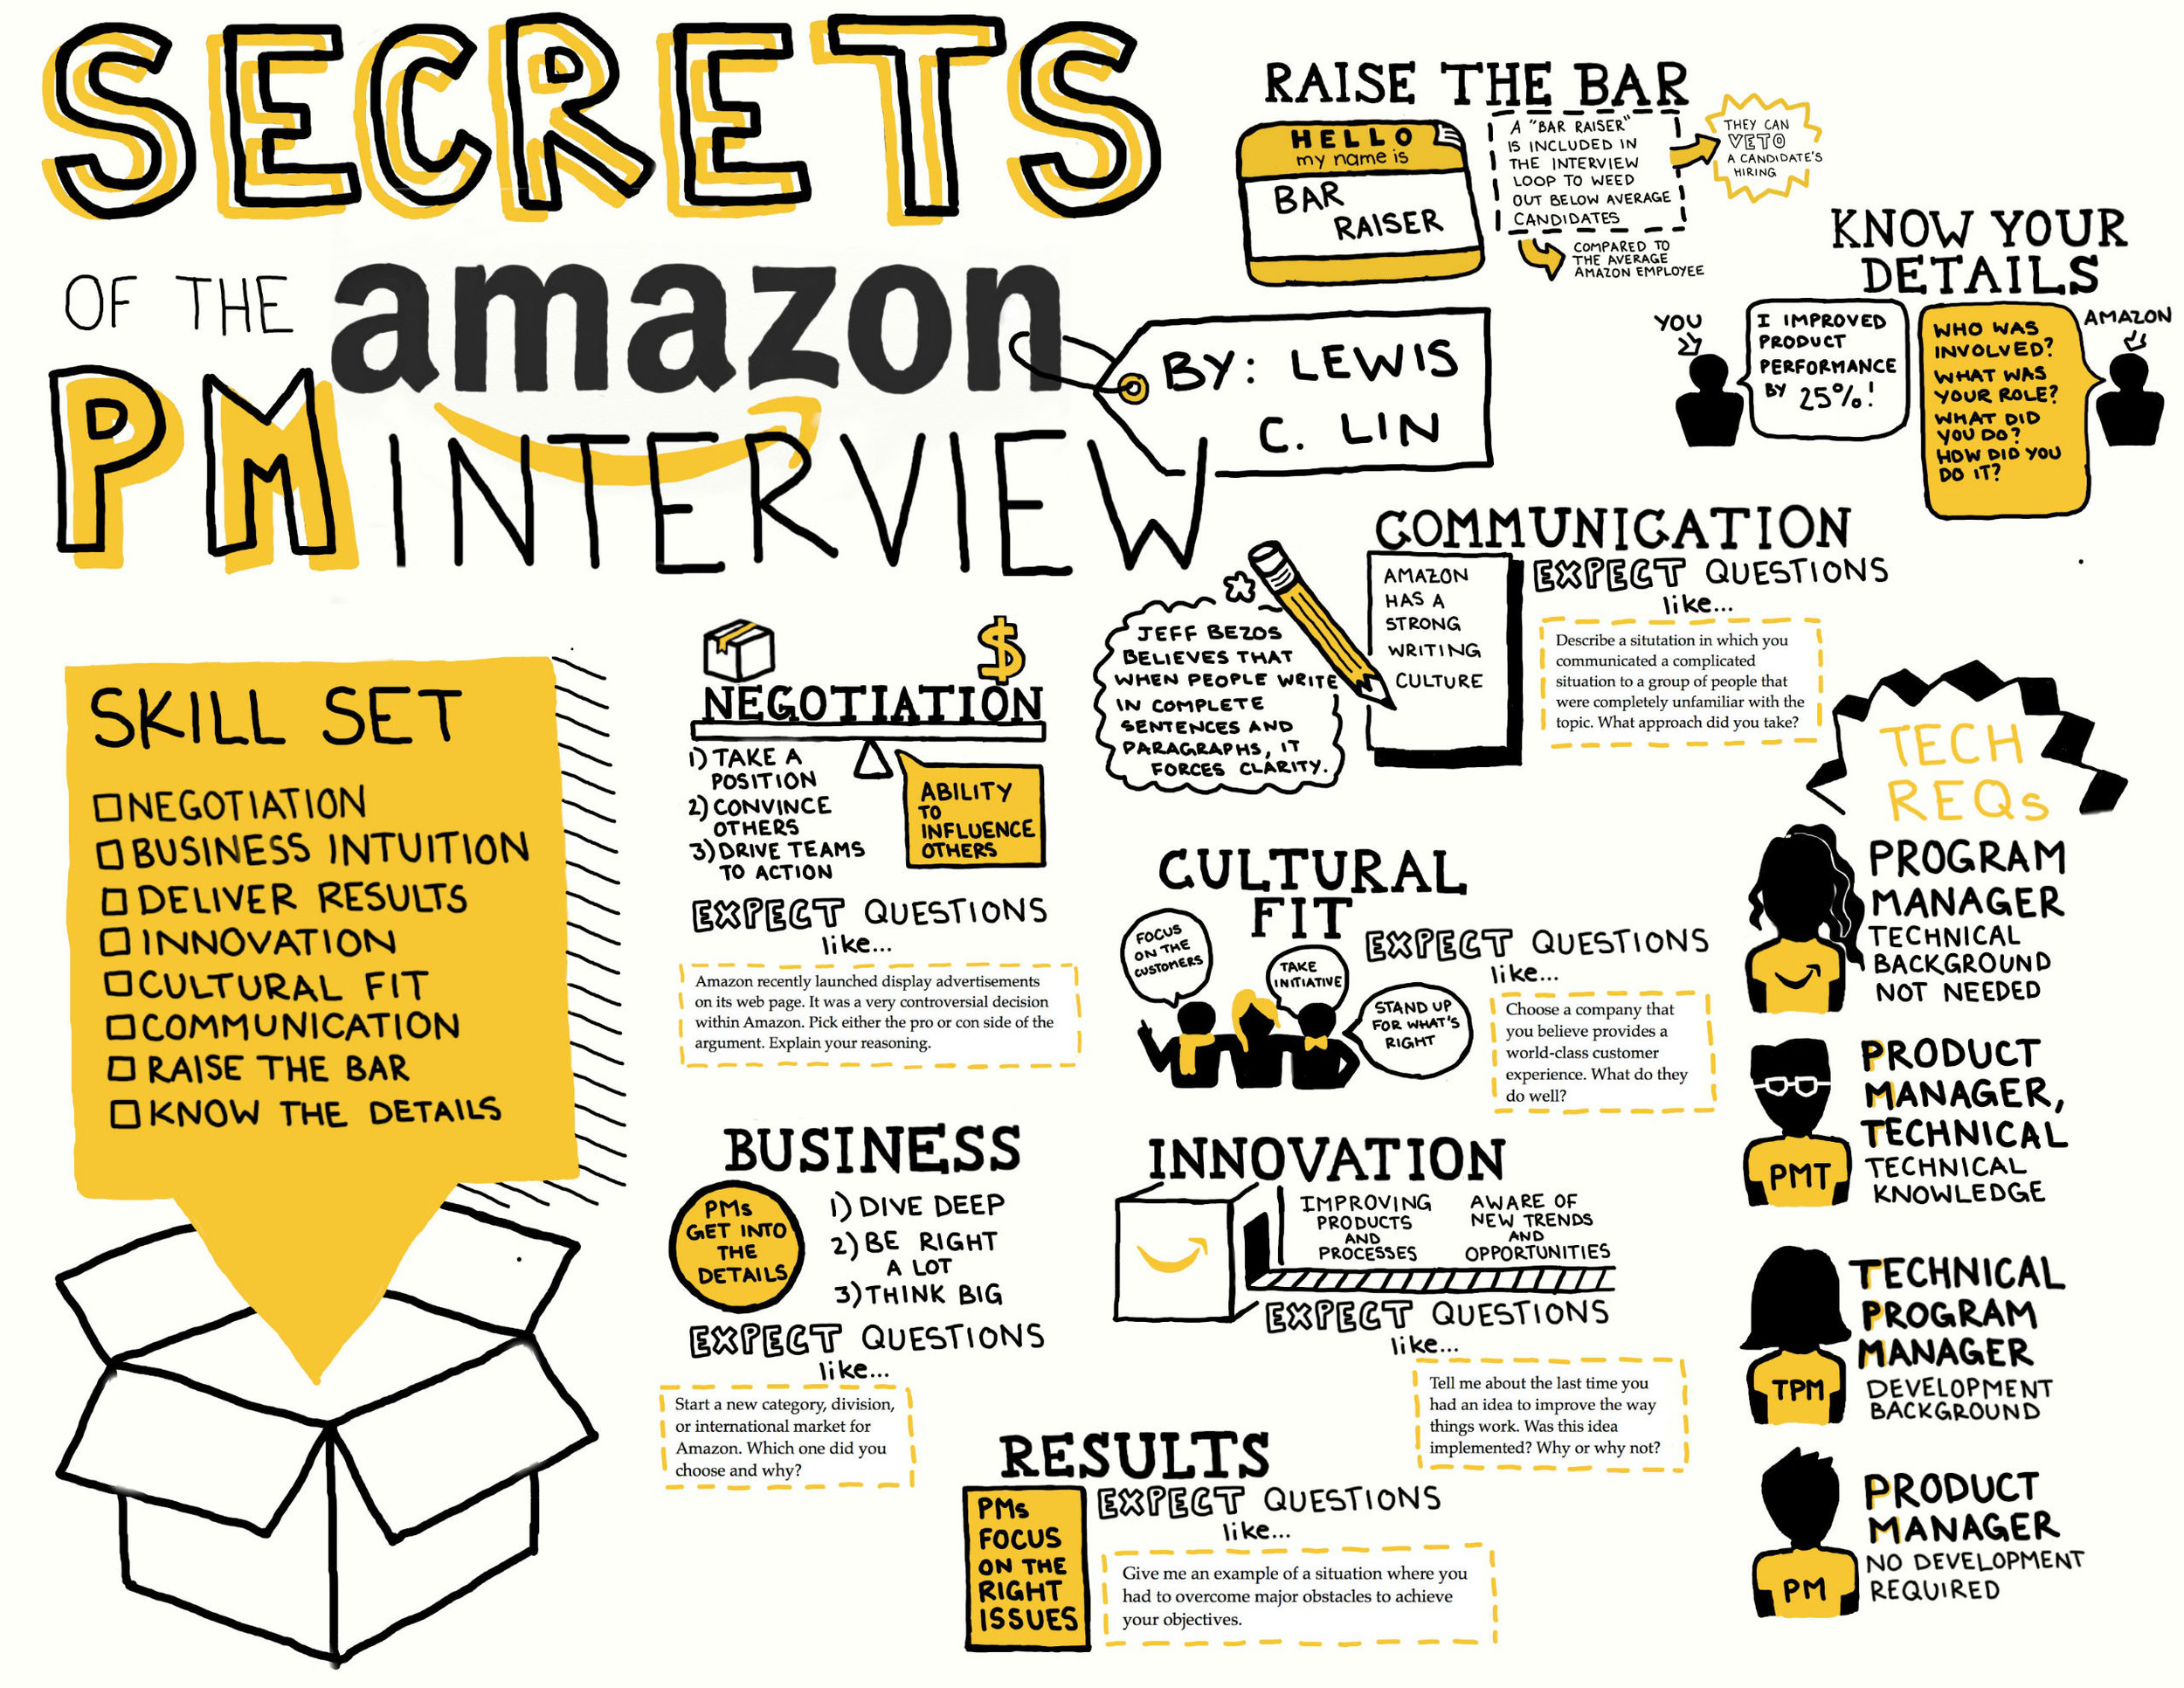 amazon-product-manager-interview-cheat-sheet